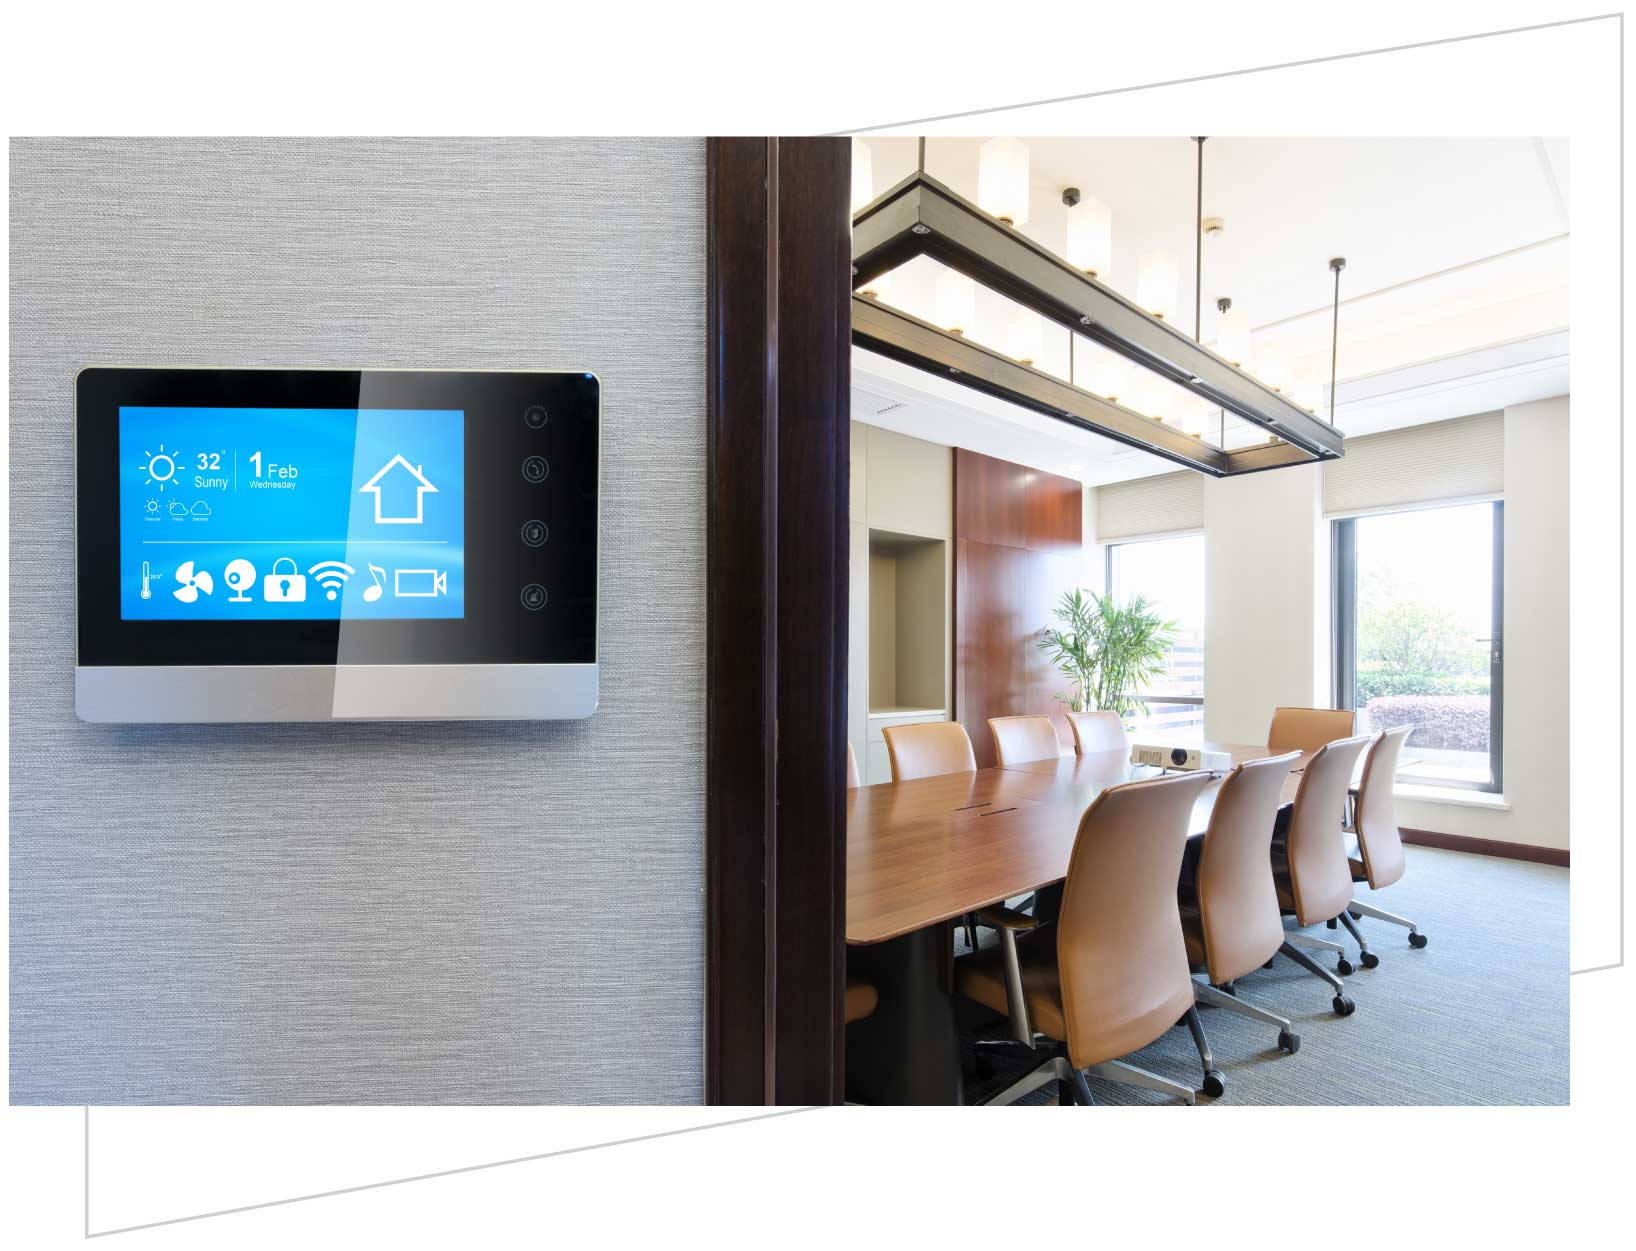 photo of smart conference room with projector and smart control panel